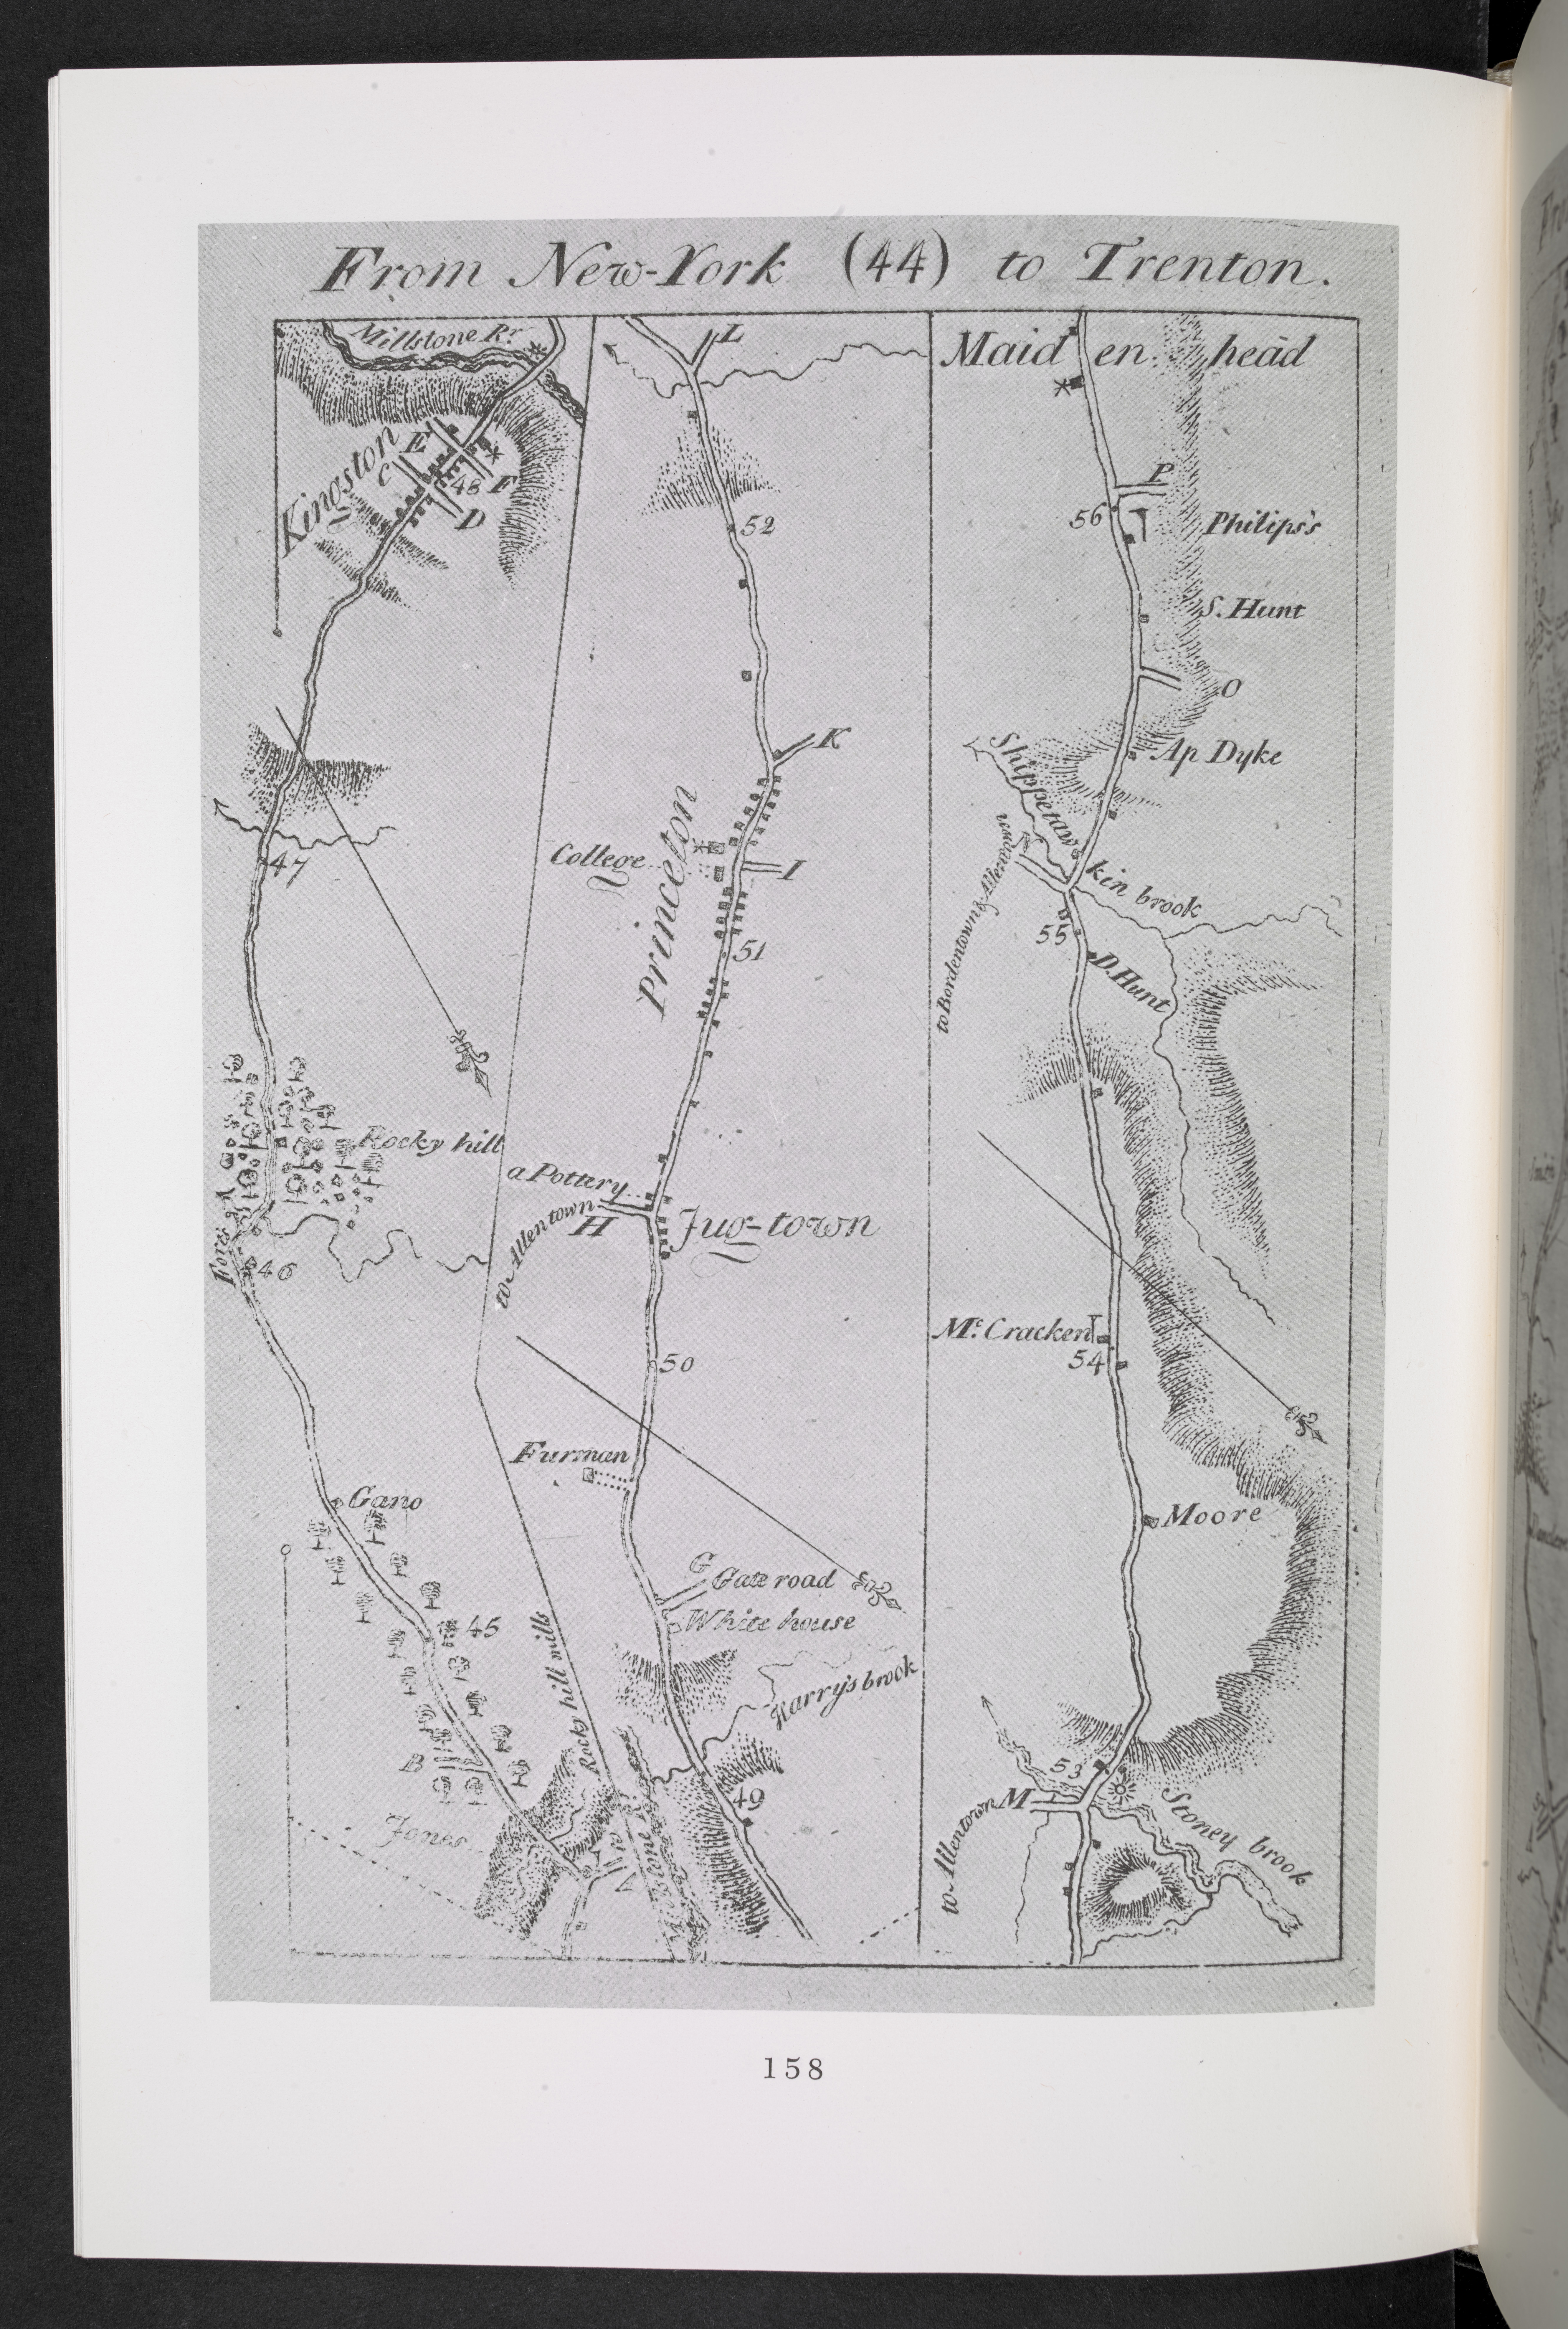 Facsimile of Christopher Colles' map of the road from New York City to Trenton in New Jersey (1789)